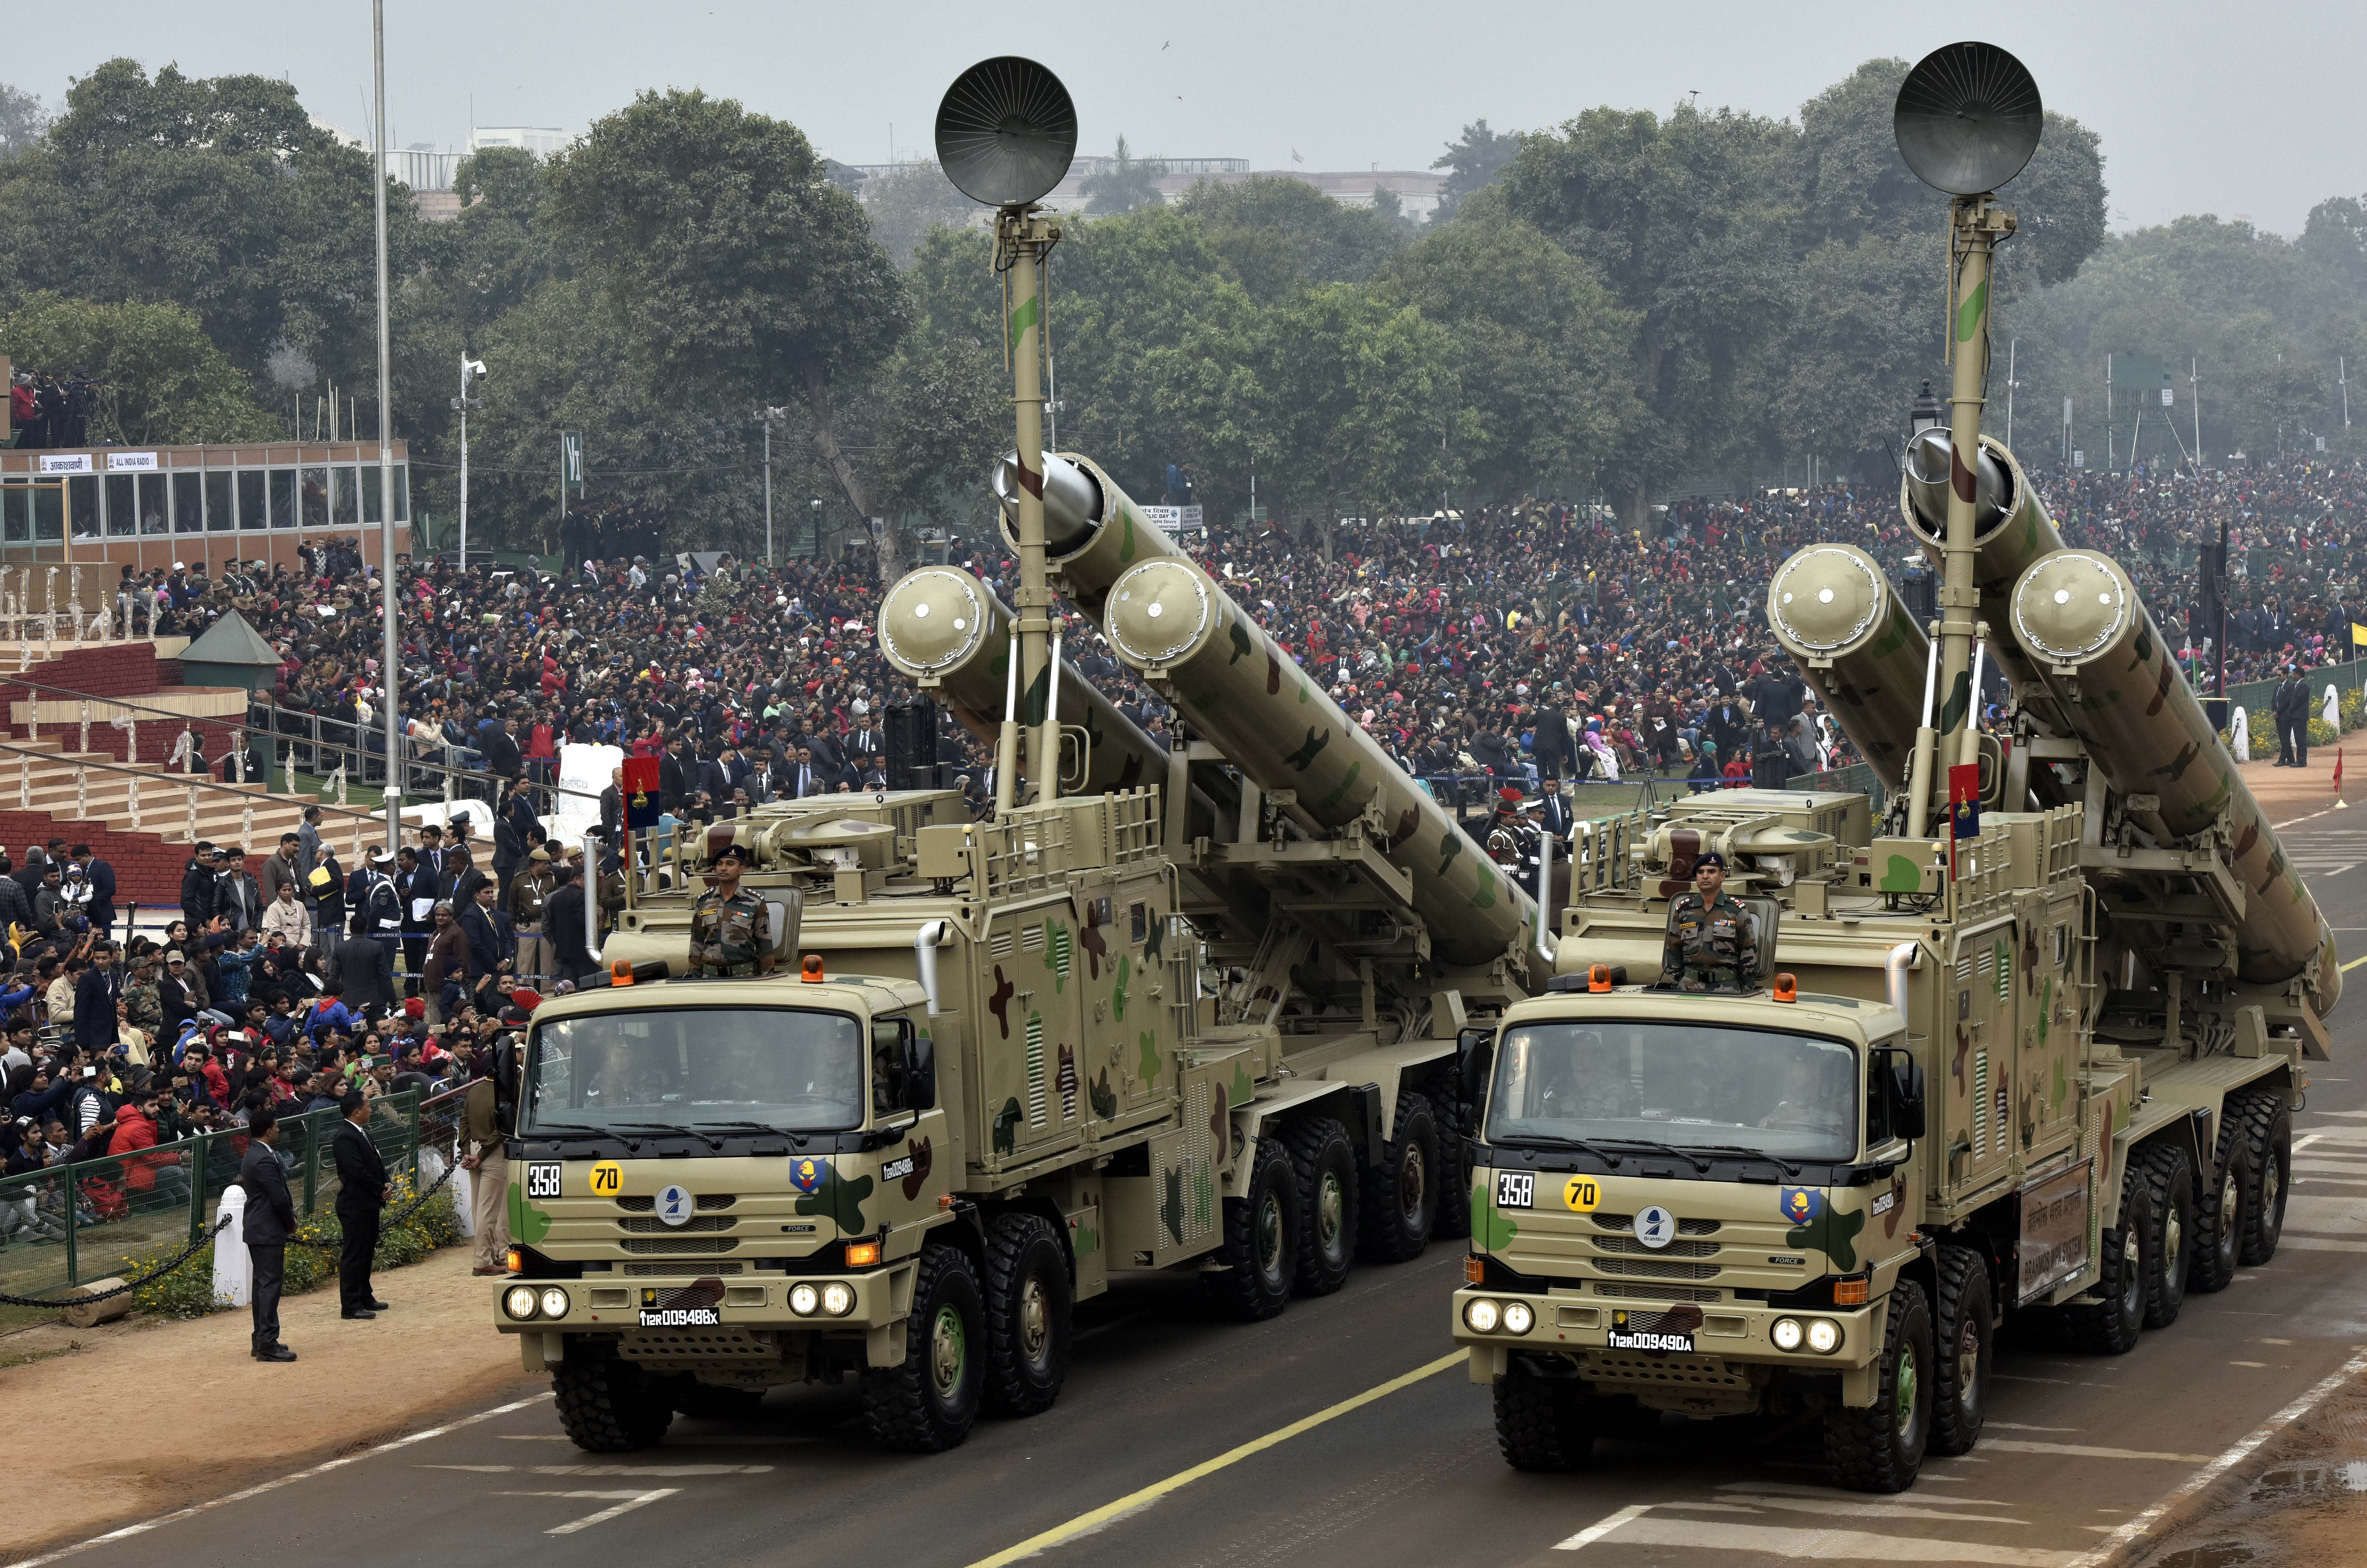 The BrahMos weapon system in full display during a rehearsal for India's Republic Day Parade on January 23, 2018 in New Delhi.